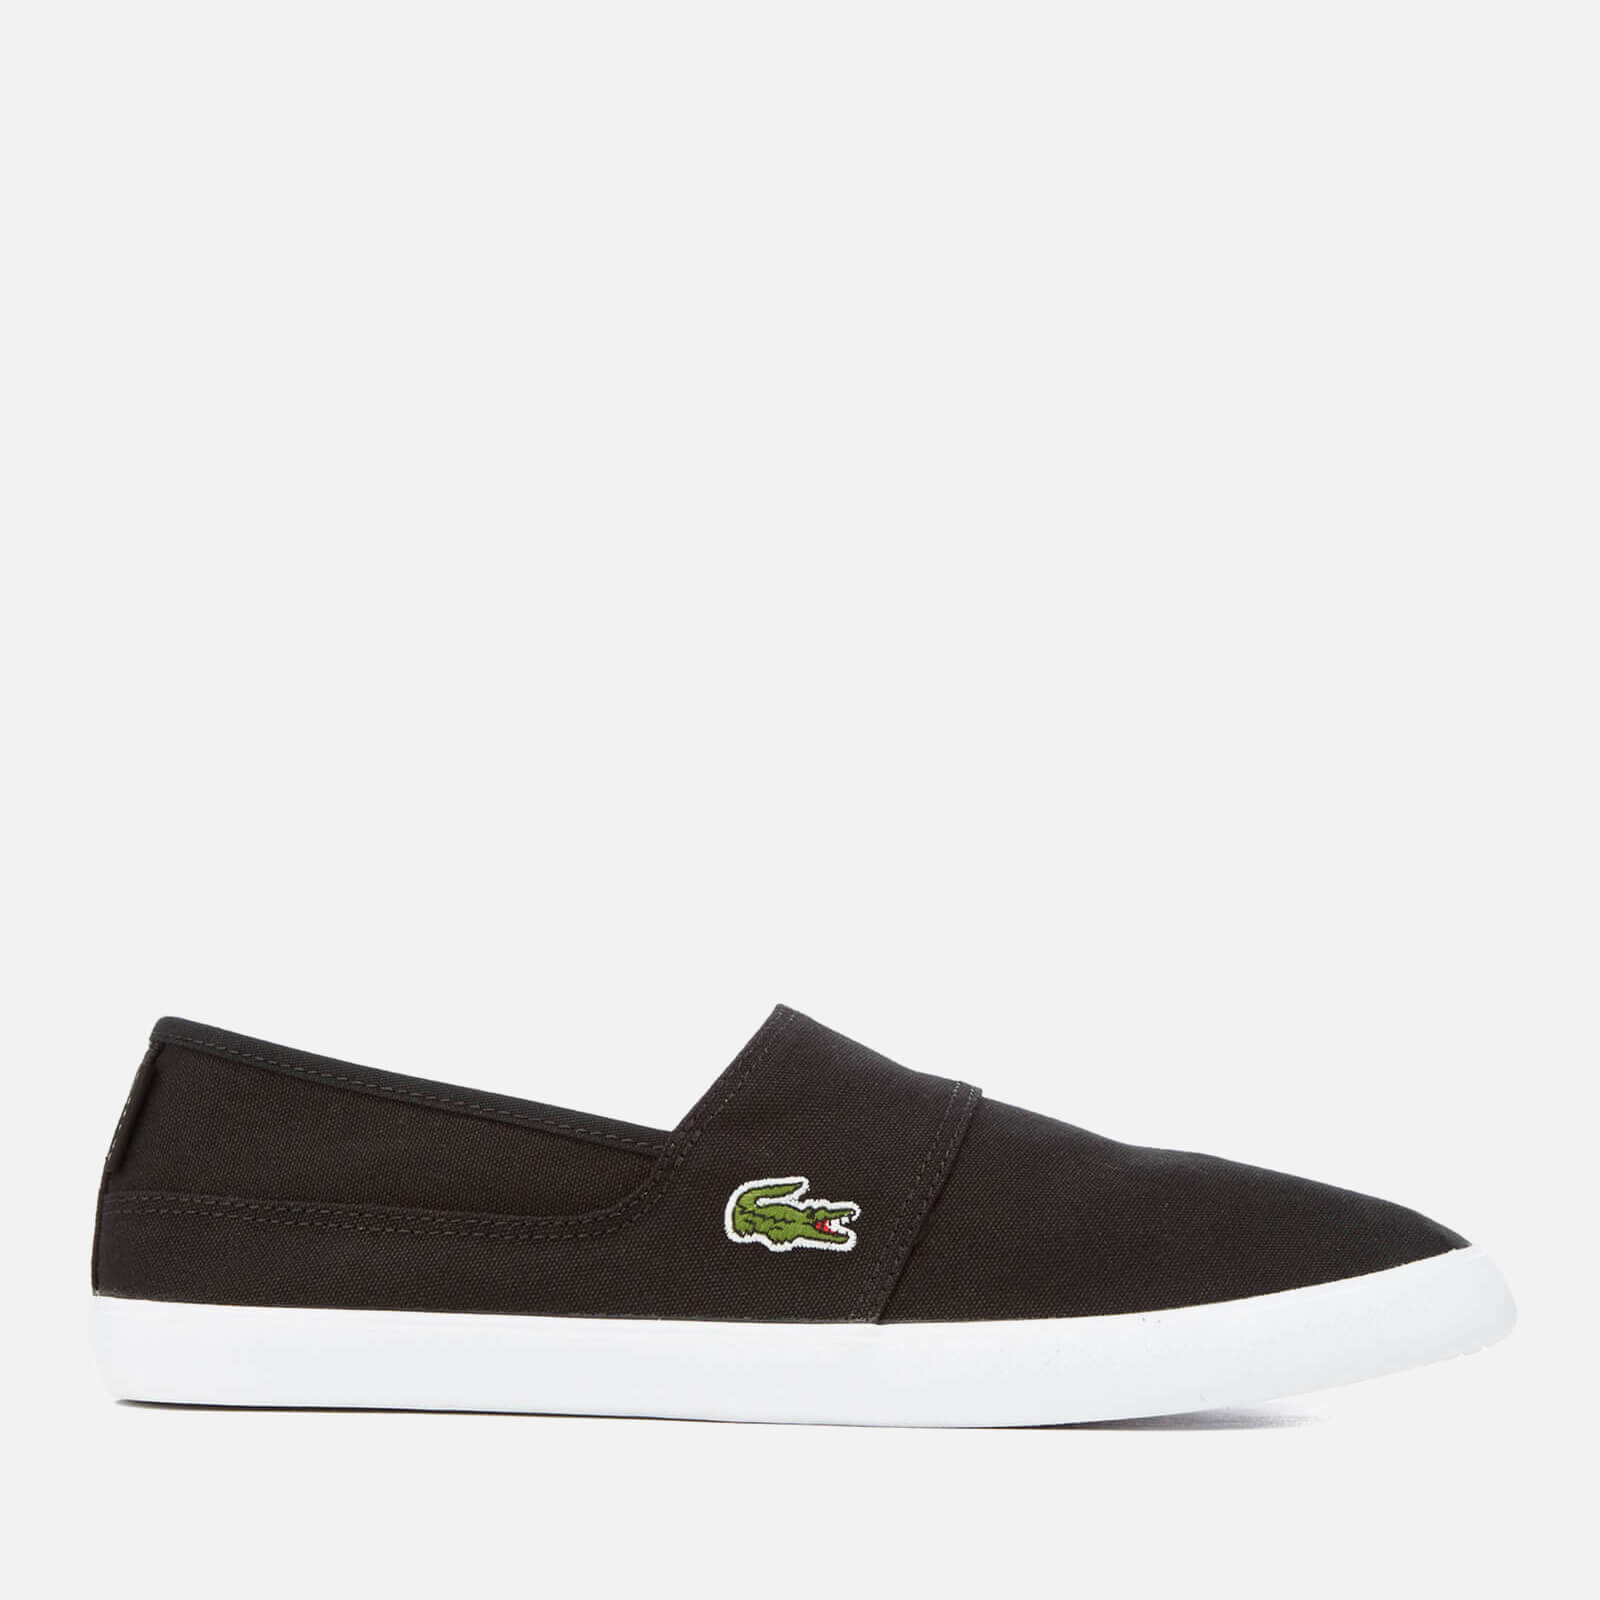 bcf8c5efa Lacoste Men s Marice Canvas Slip-On Pumps - Black - Free UK Delivery over £ 50